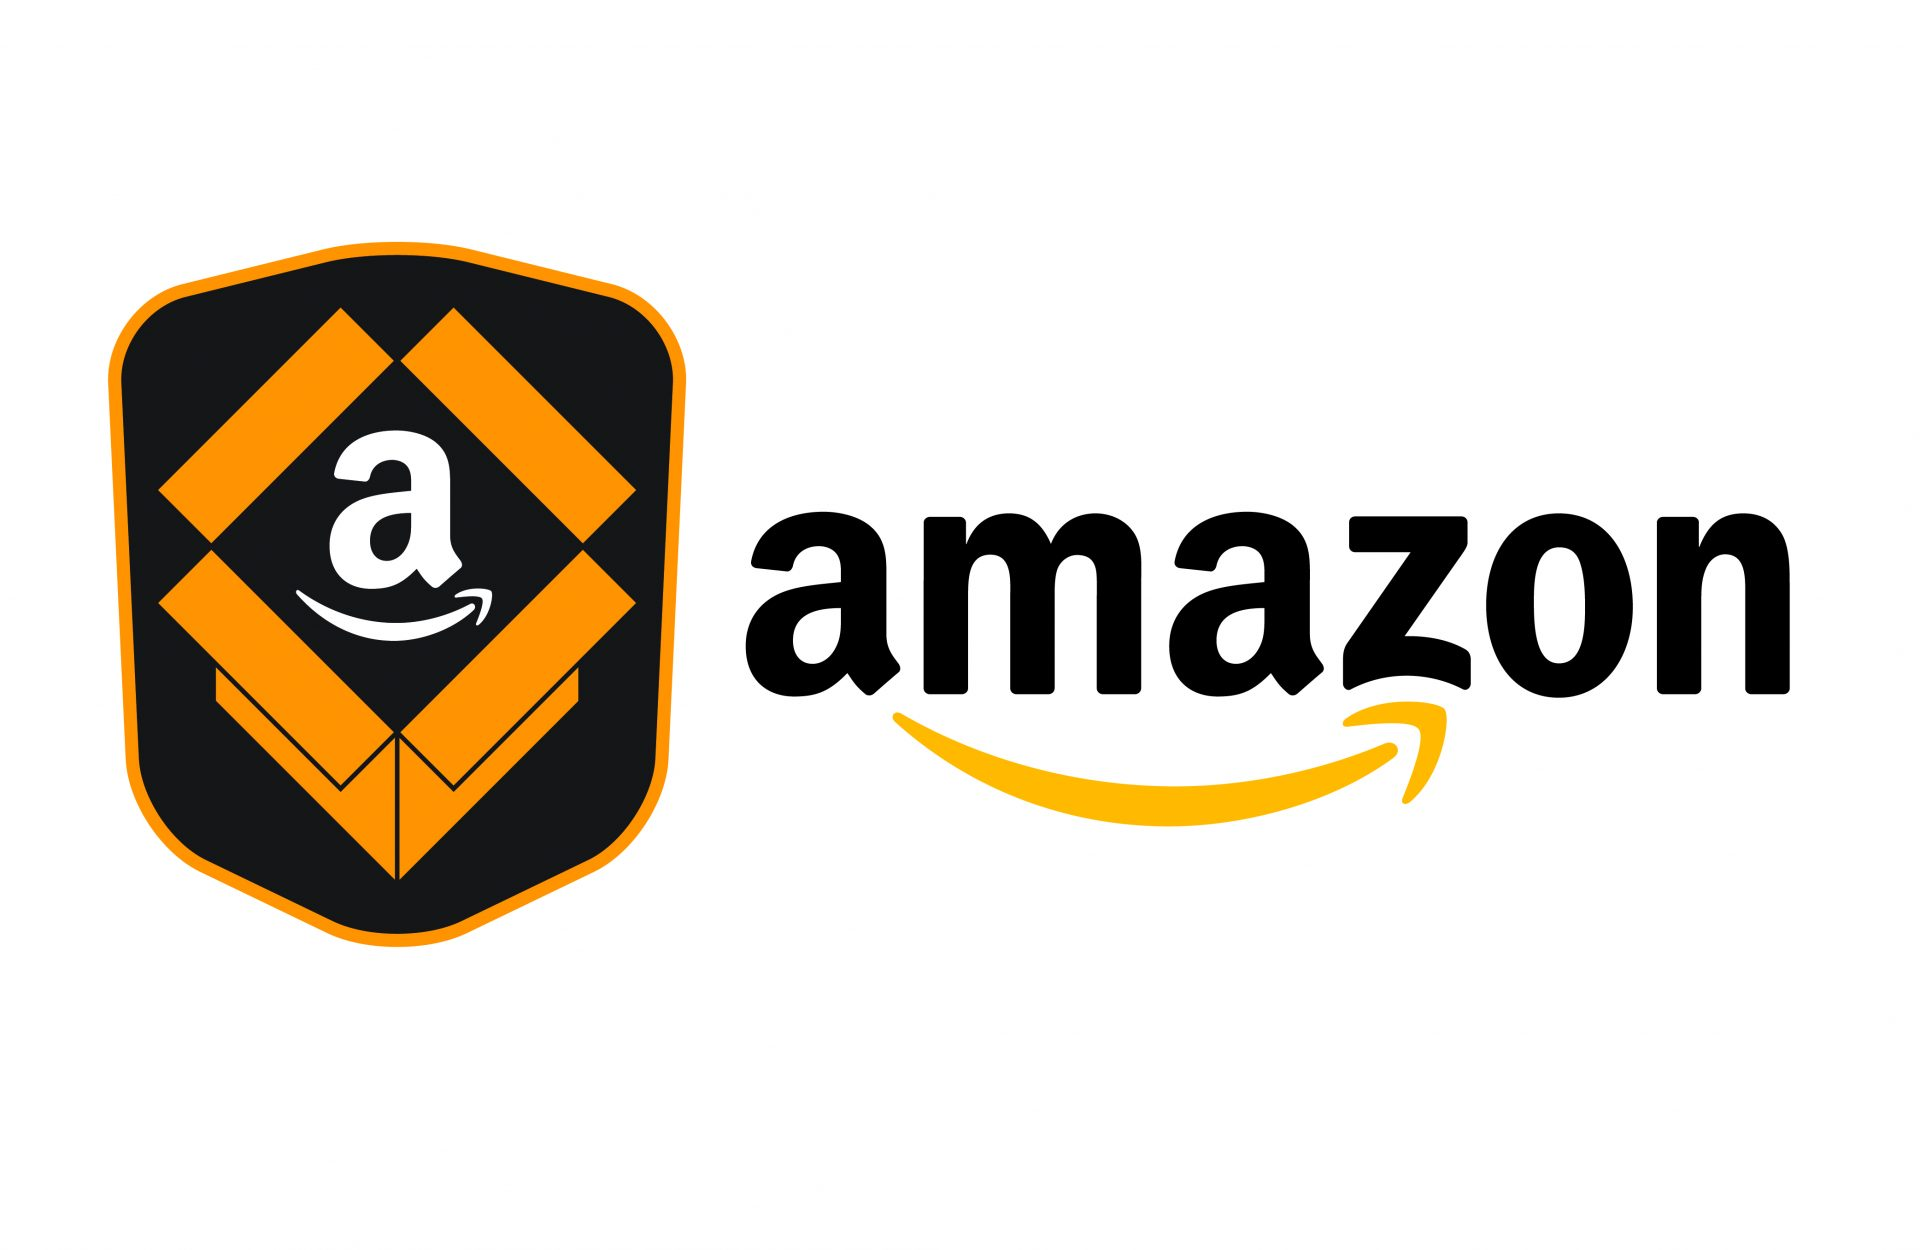 amazon com case group write up Amazoncom new business model ● venture financing chronology ● success lessons amazoncom was founded by jeff bezos, a computer science and electrical engineering graduate launched in 2006, aws is a collection of web services that together make up a cloud computing.